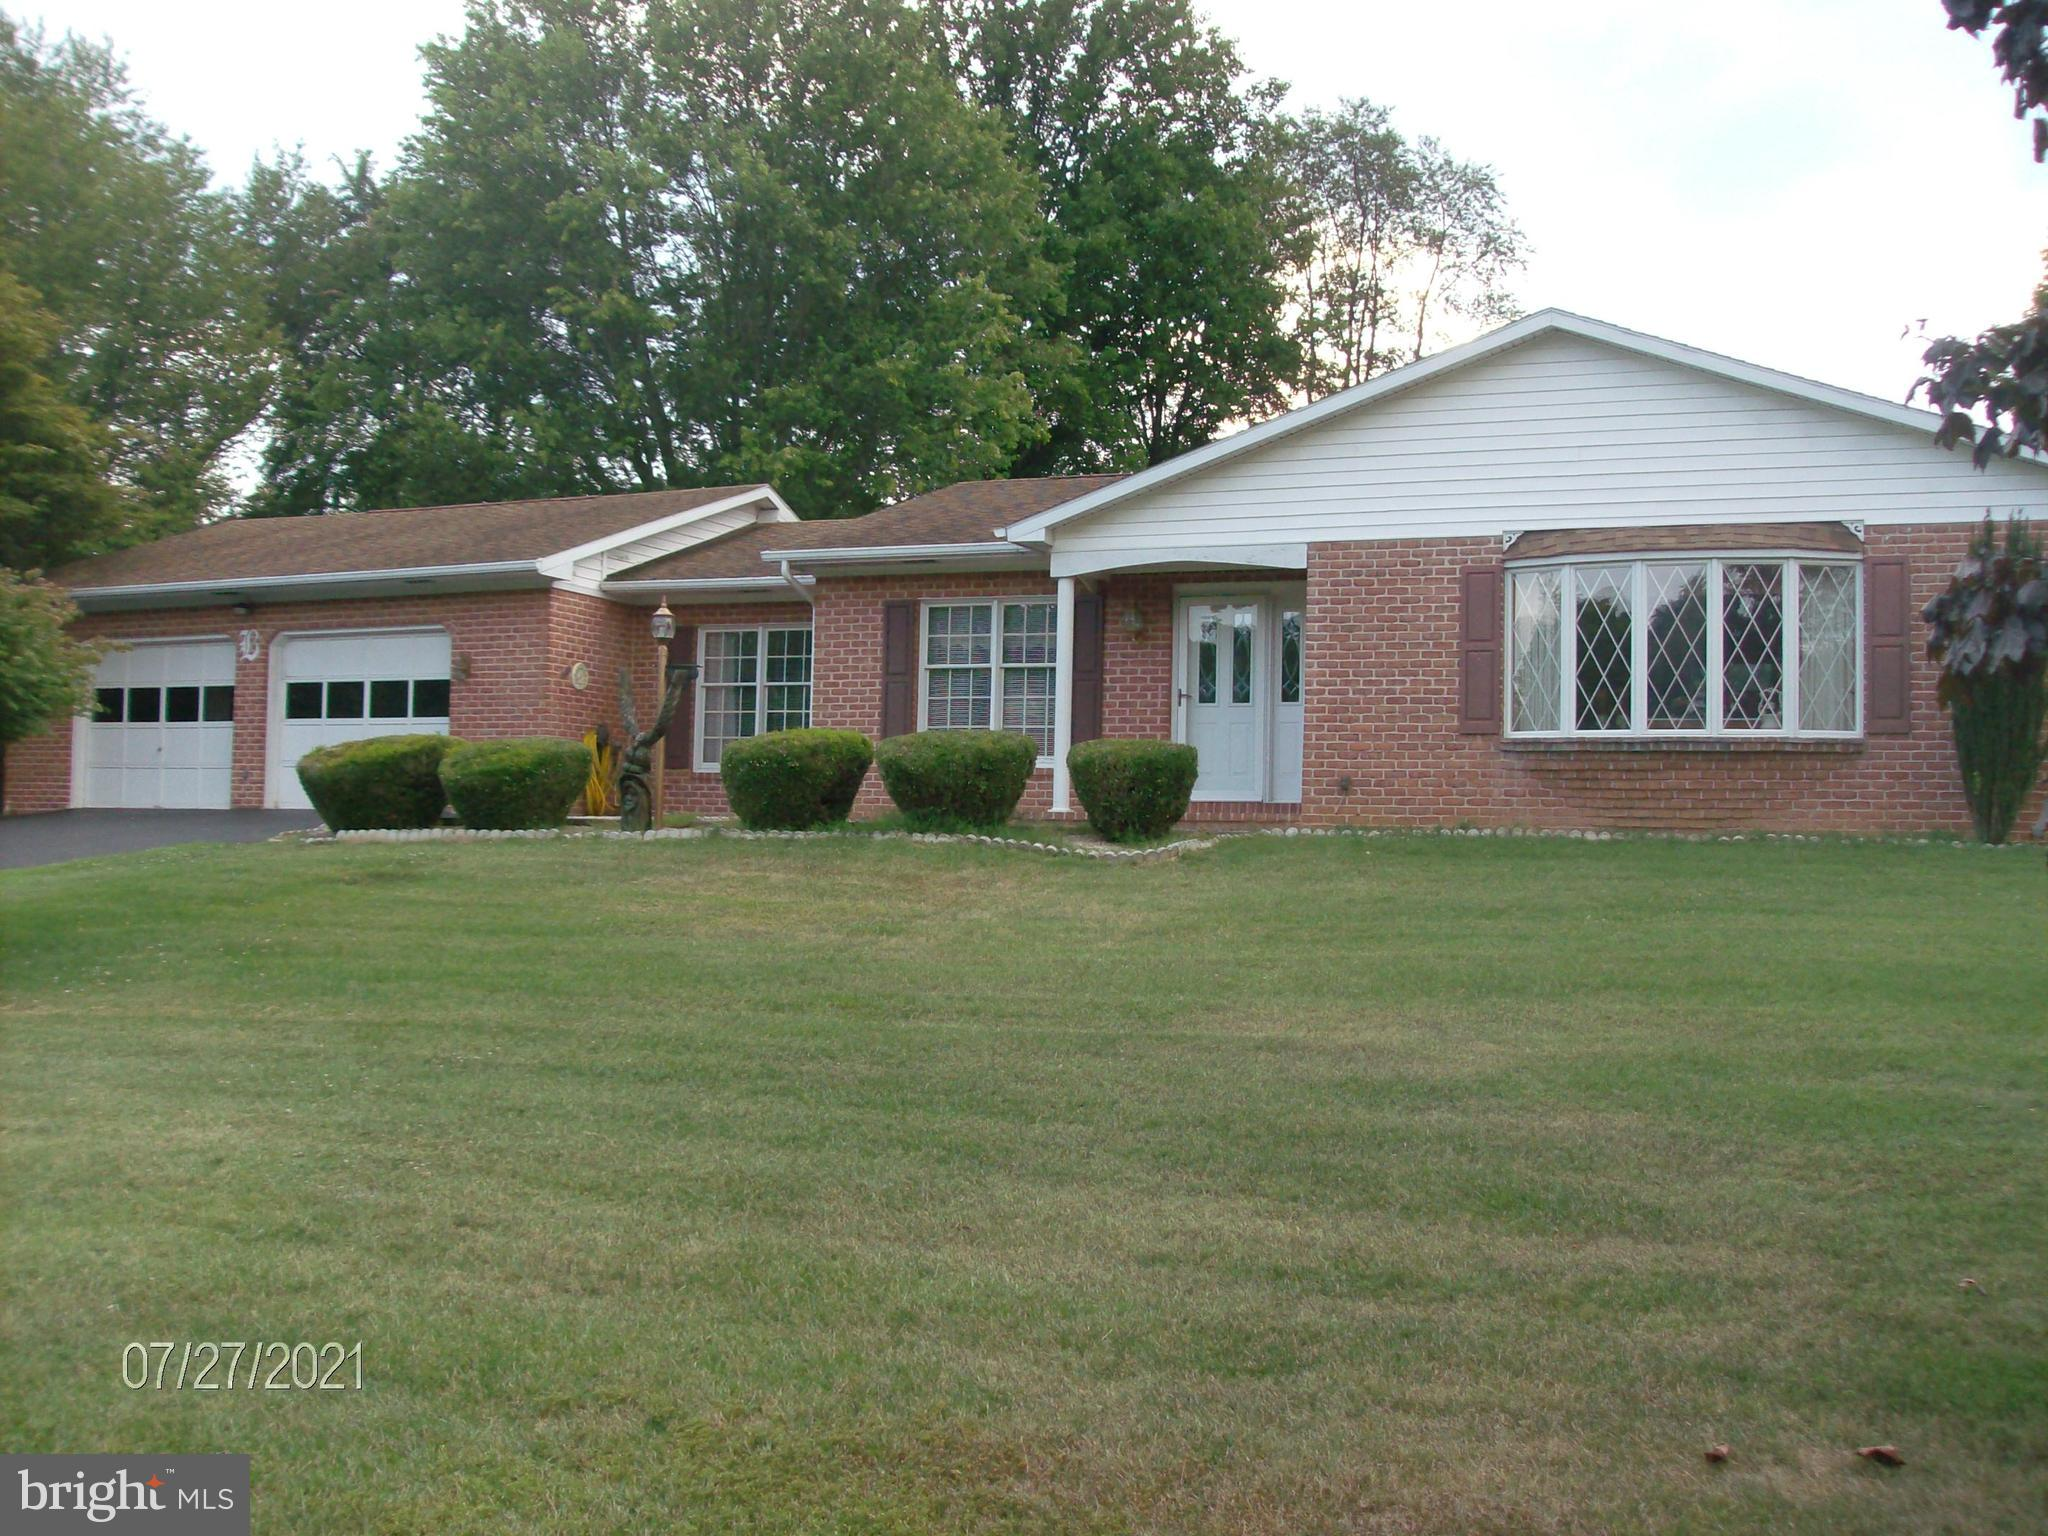 Excellent condition.   Owner had house built .  Easy access to hospital, shopping, and I81.  School